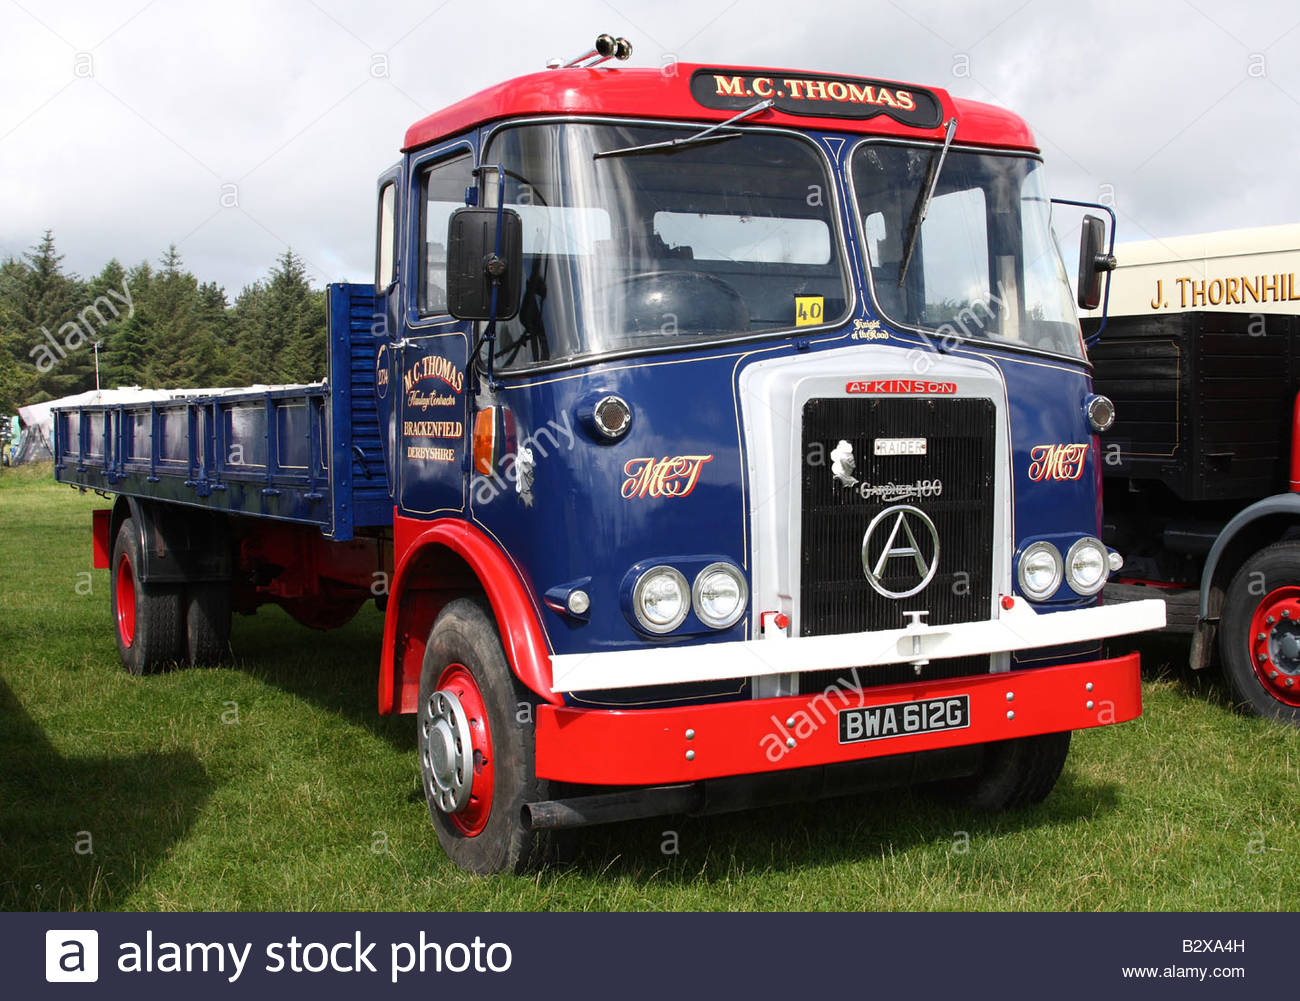 atkinson-lorry-at-the-cromford-steam-engine-rally-2008